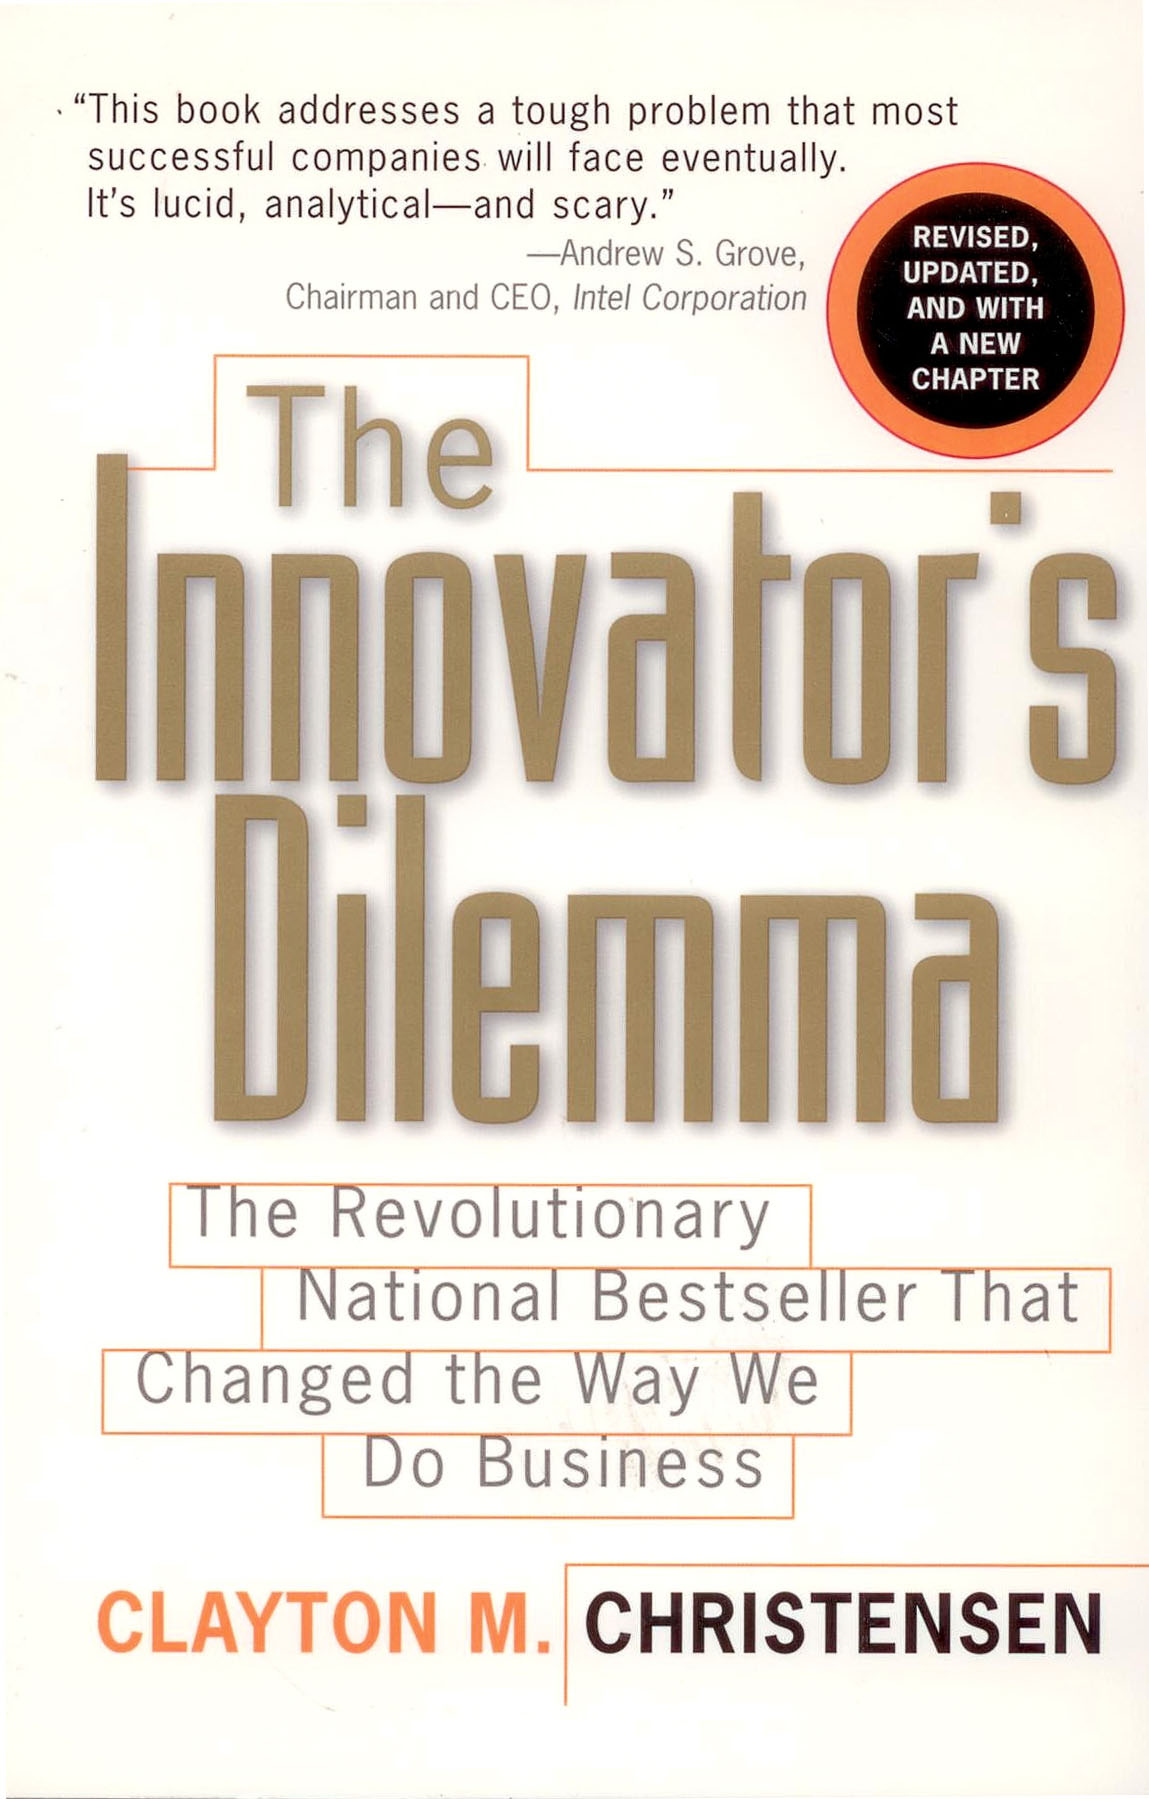 20 business books for your office that will make you look smart the innovators dilemma fandeluxe Gallery